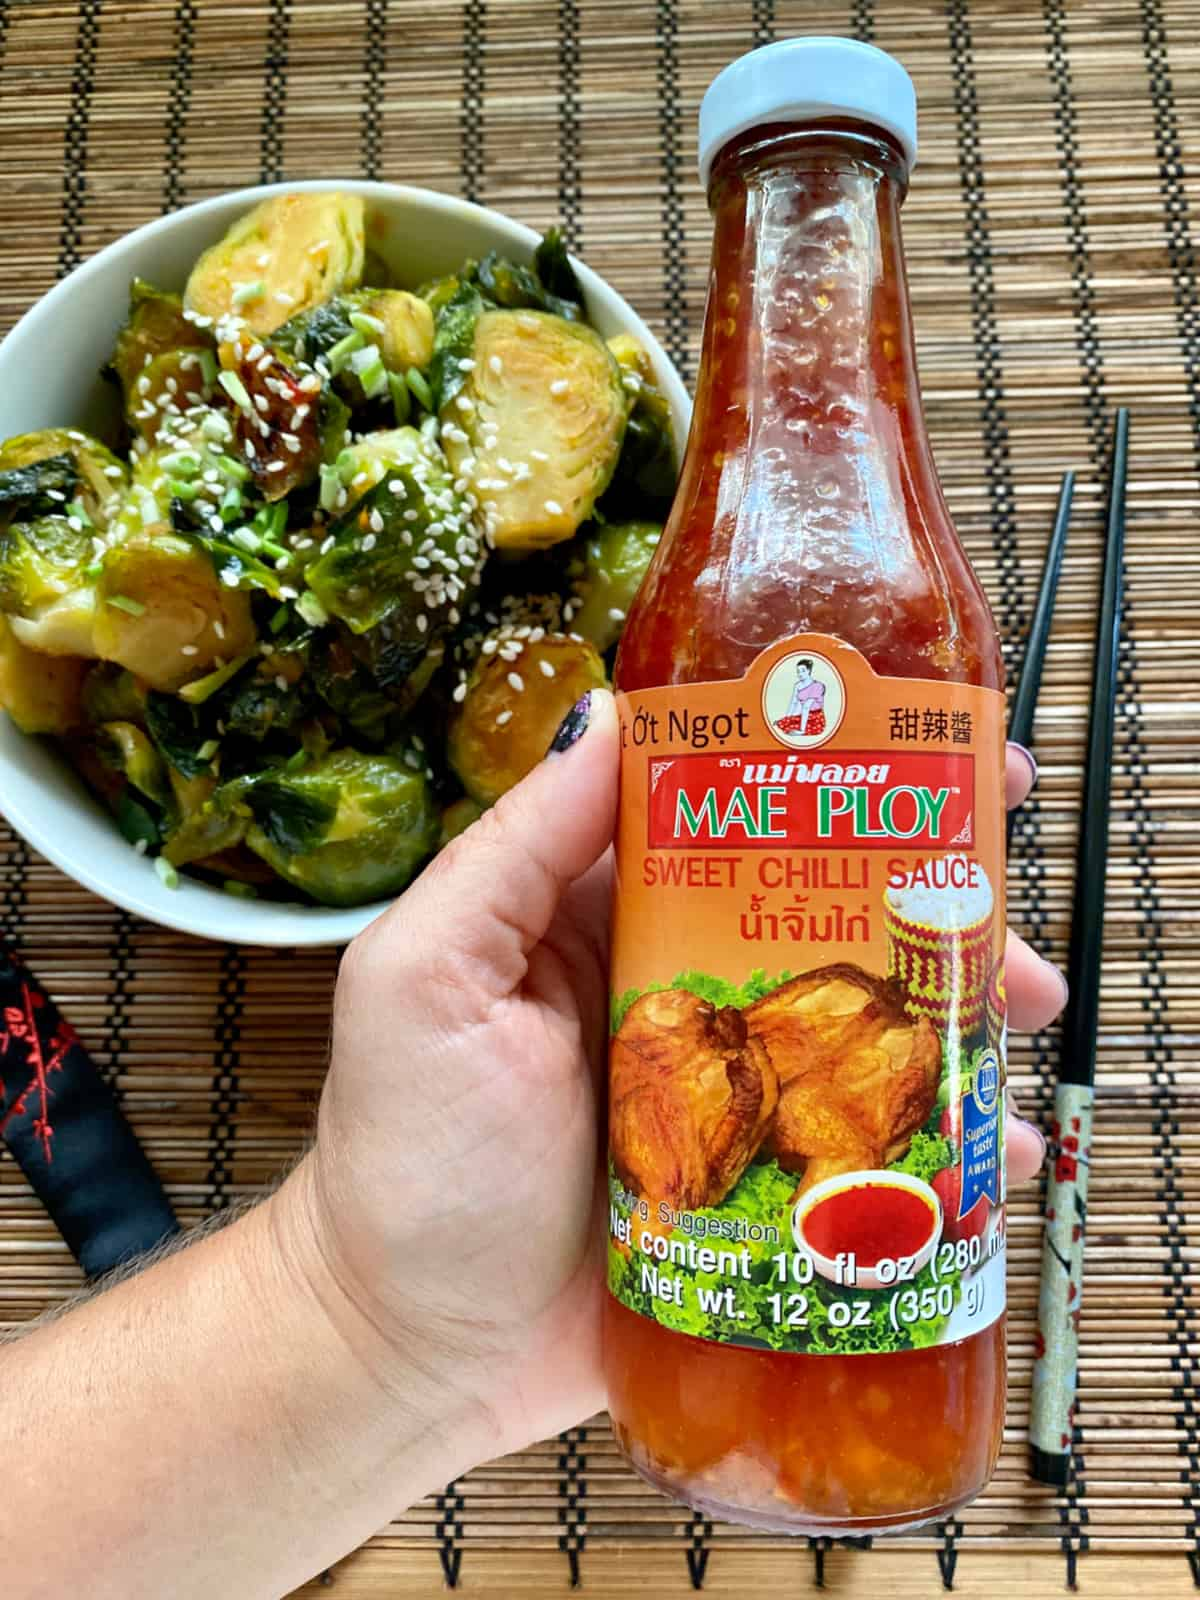 Female hand holding a bottle of Mae Ploy Sweet Chili Sauce.